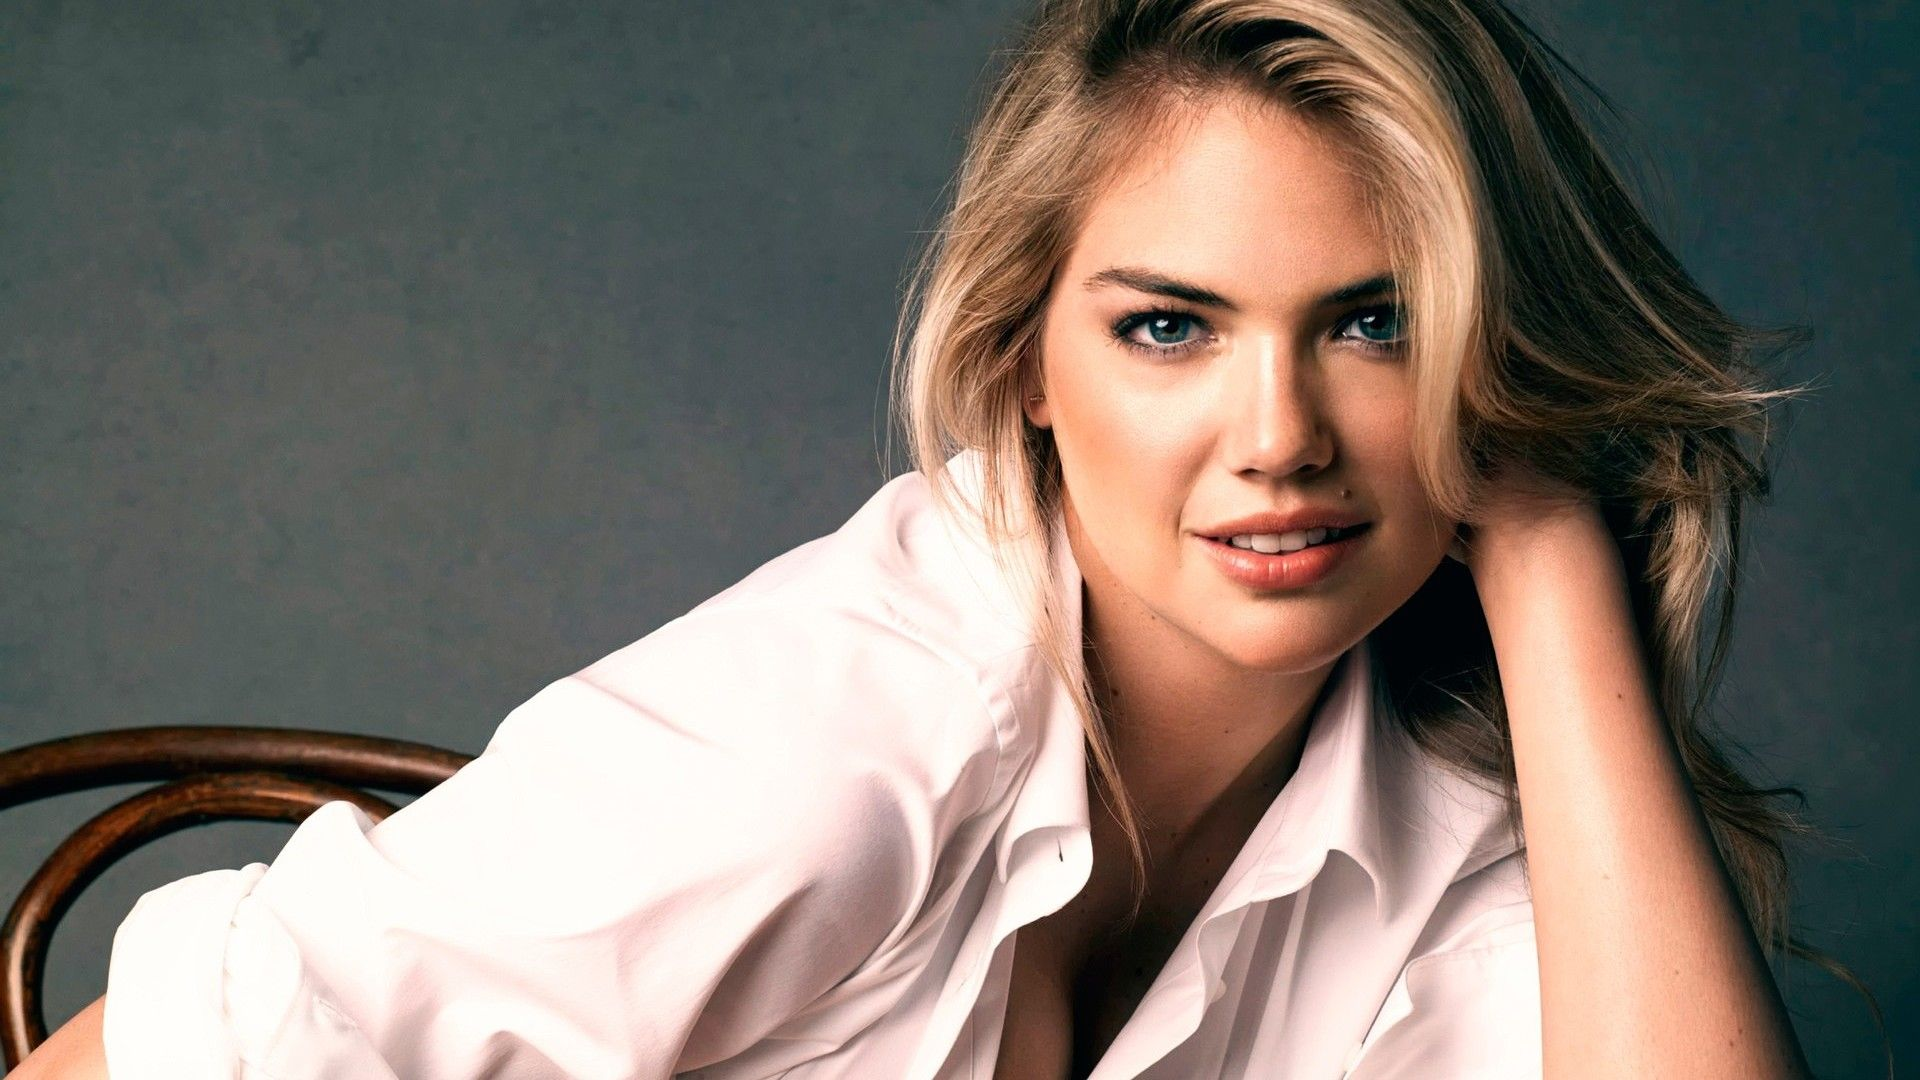 23 sexiest and hottest women in Hollywood 1 1